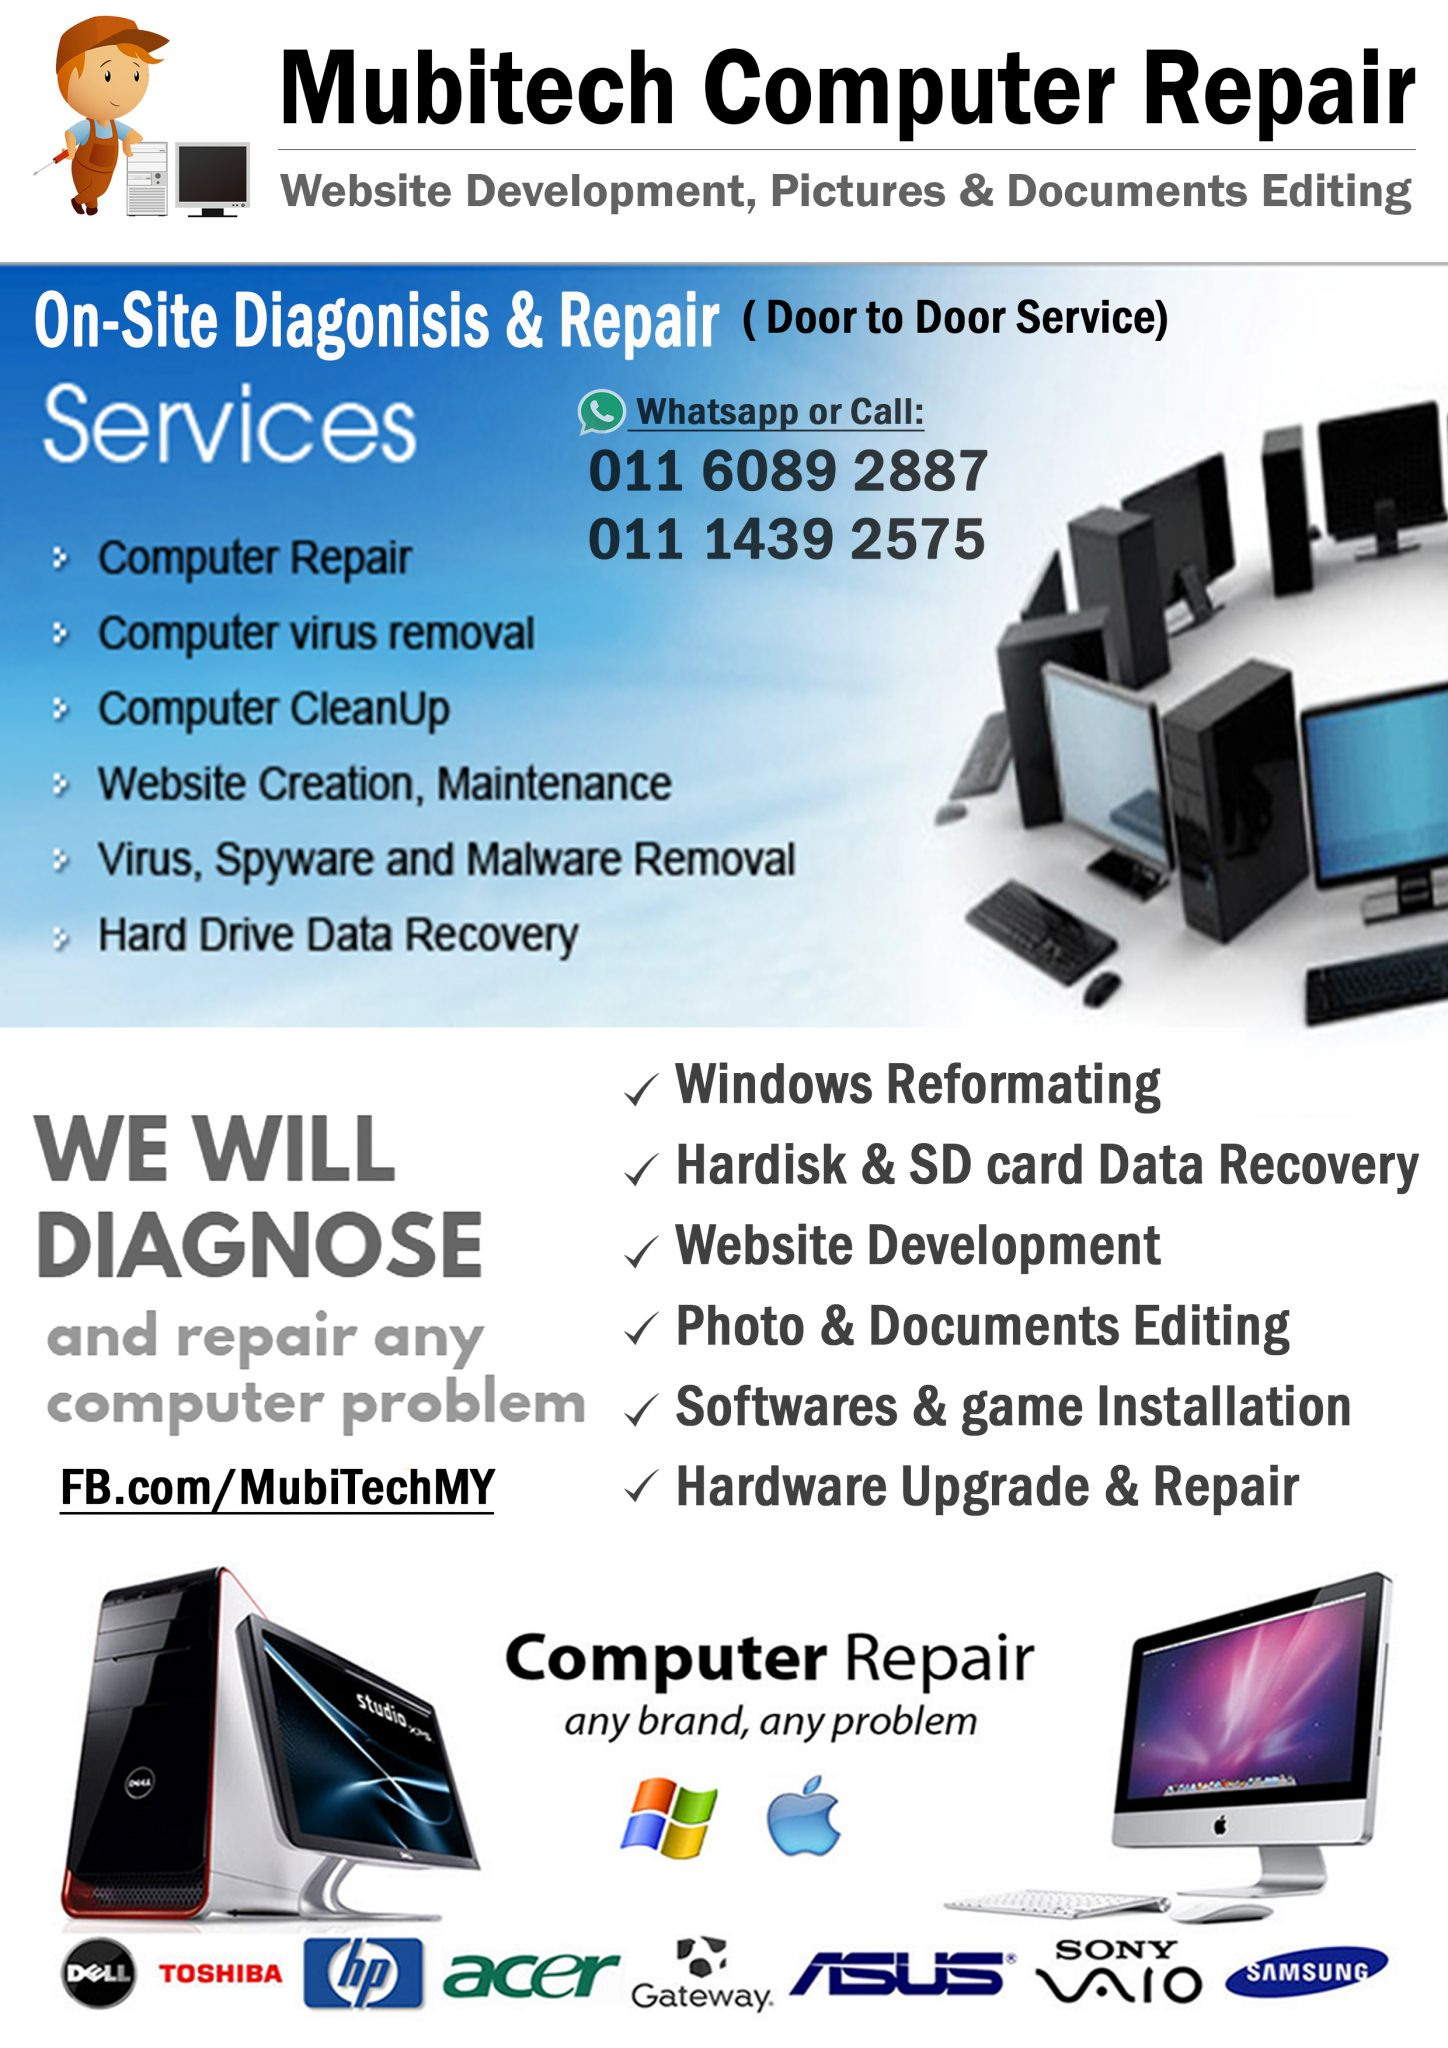 Mubitech Computer Service & Website Developer